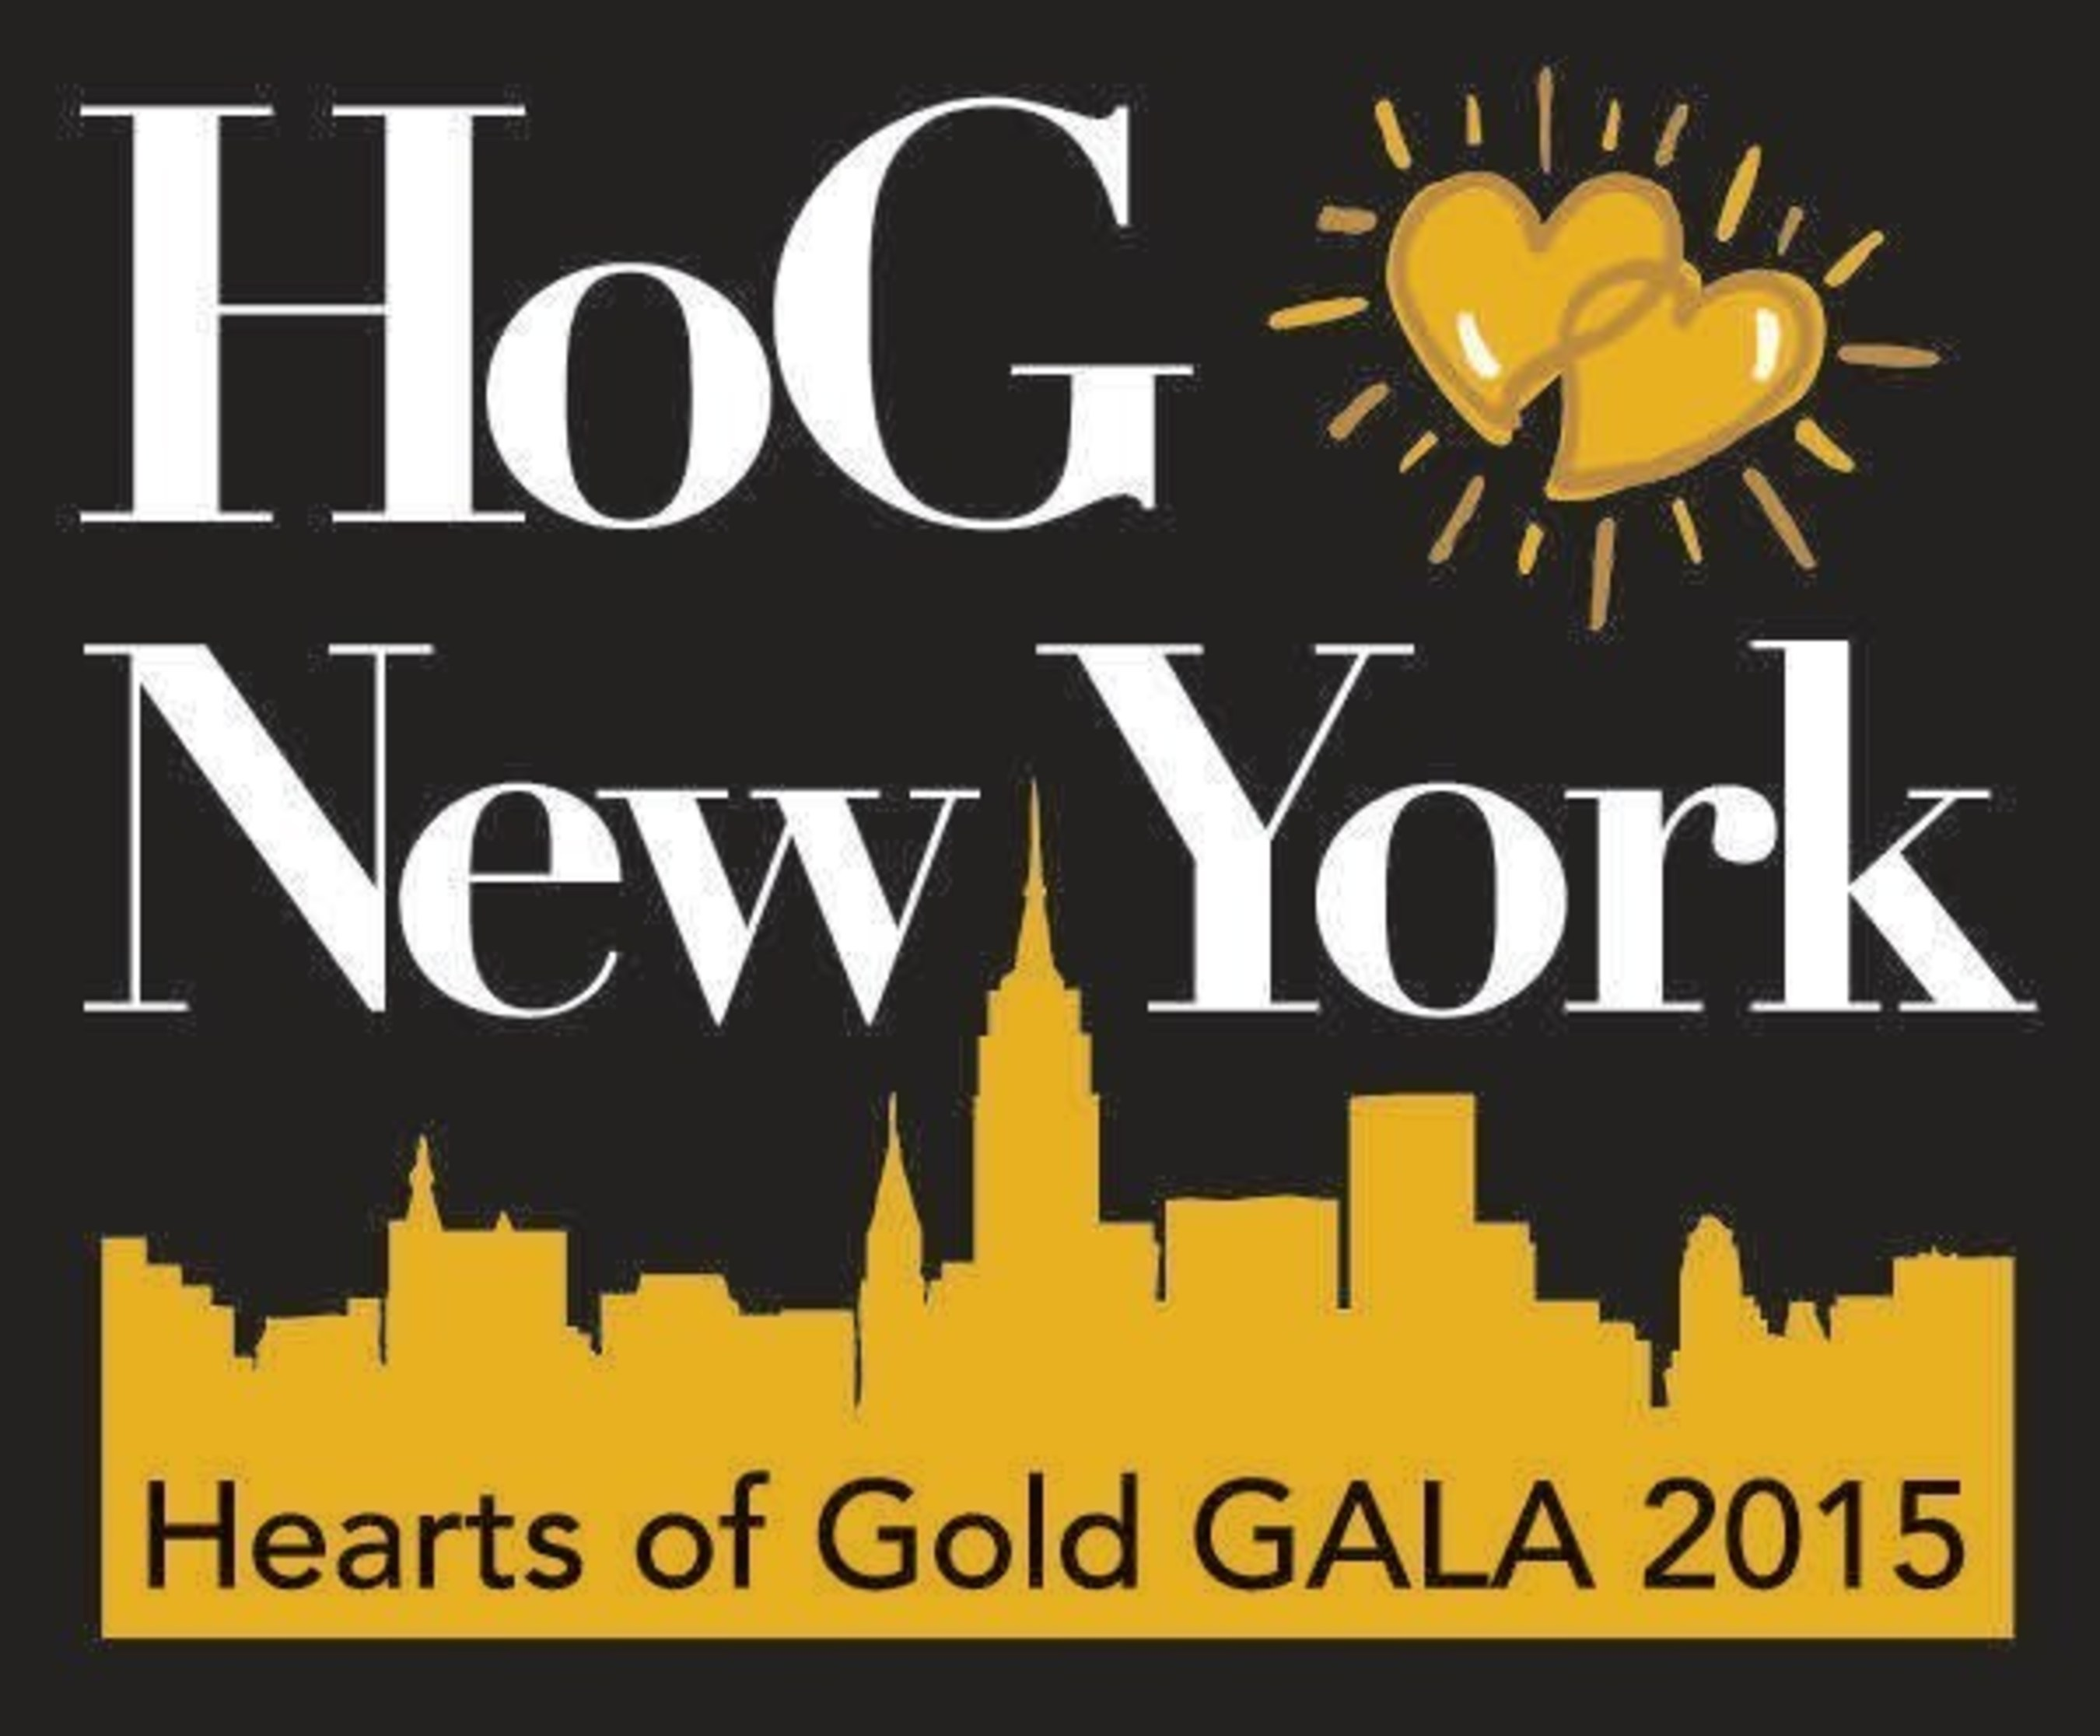 Advocates for NYC's Homeless Moms & Kids To Be Honored at Annual Hearts of Gold Fundraising Gala